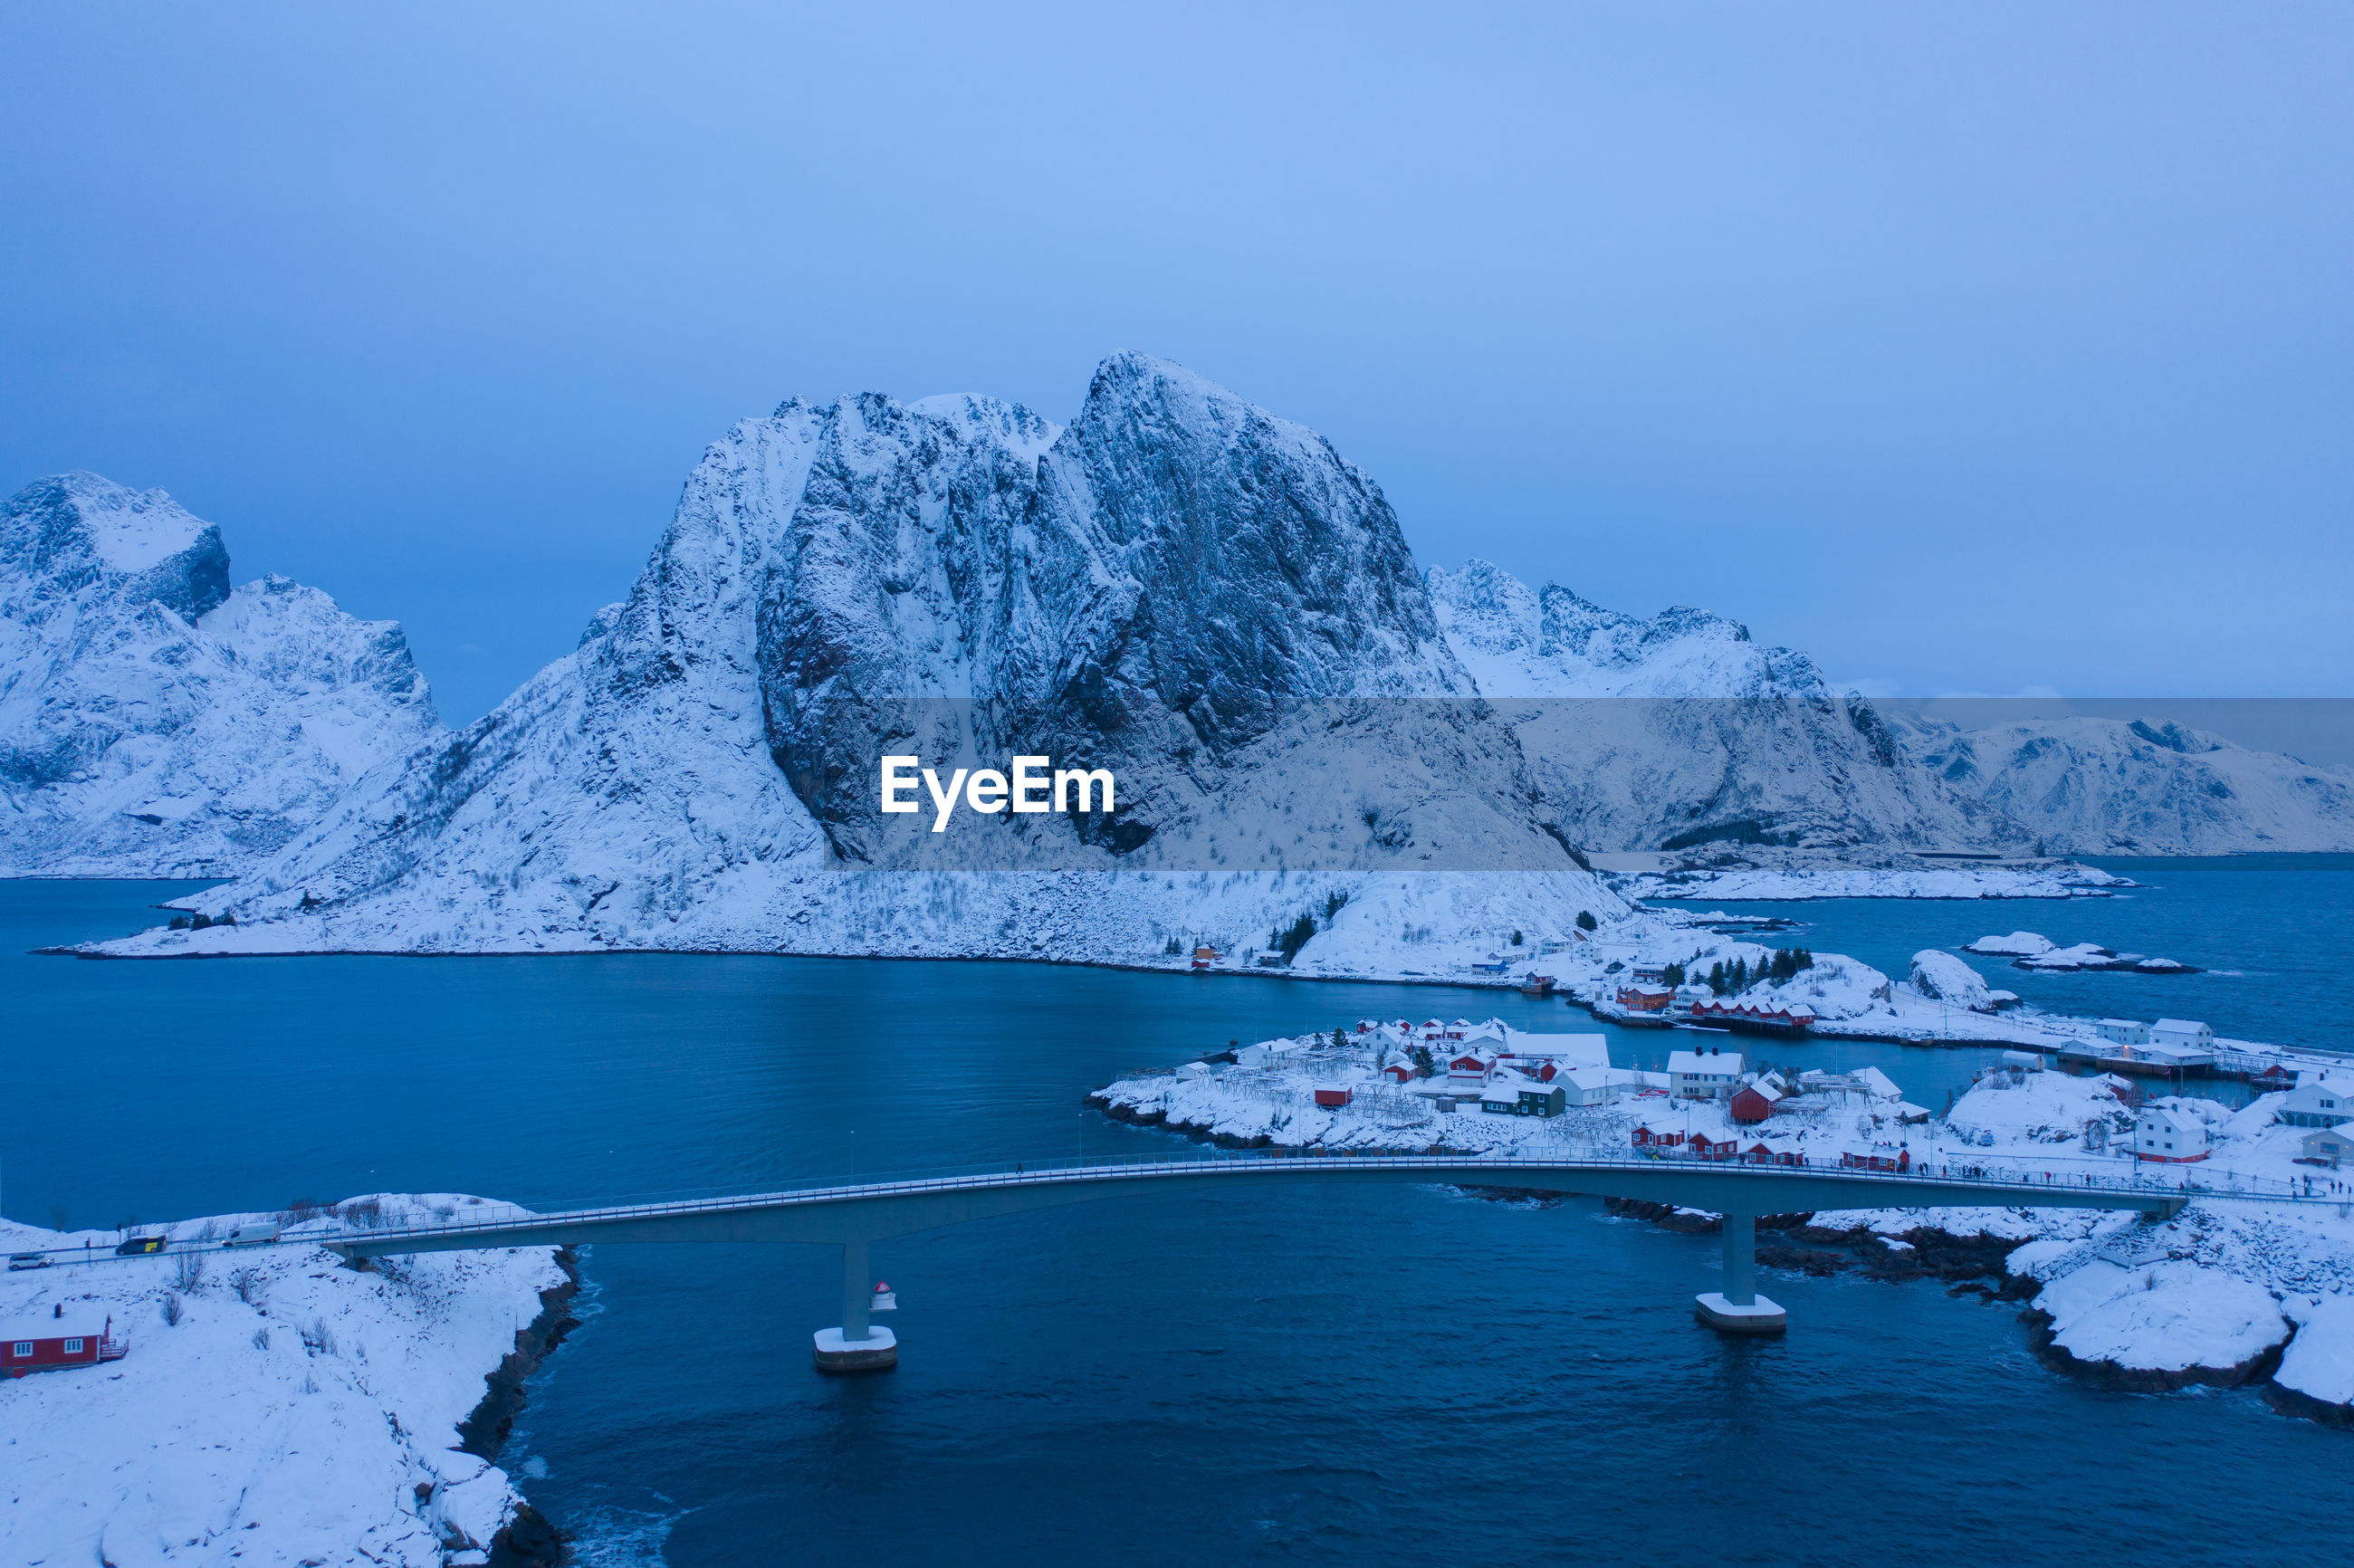 SCENIC VIEW OF SEA BY SNOWCAPPED MOUNTAIN AGAINST BLUE SKY